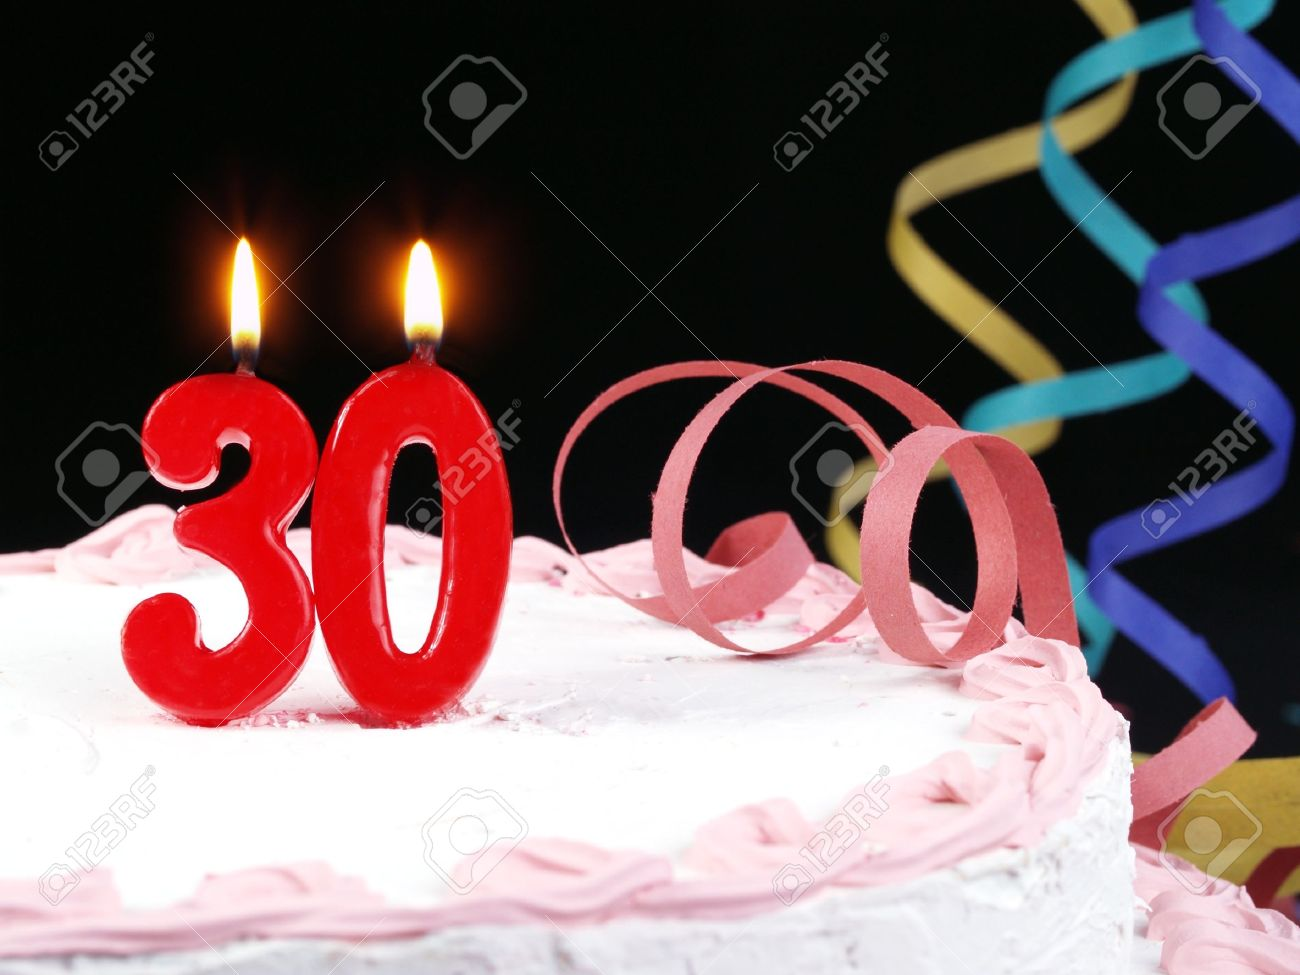 Birthday Cake With Red Candles Showing Nr 30 Stock Photo